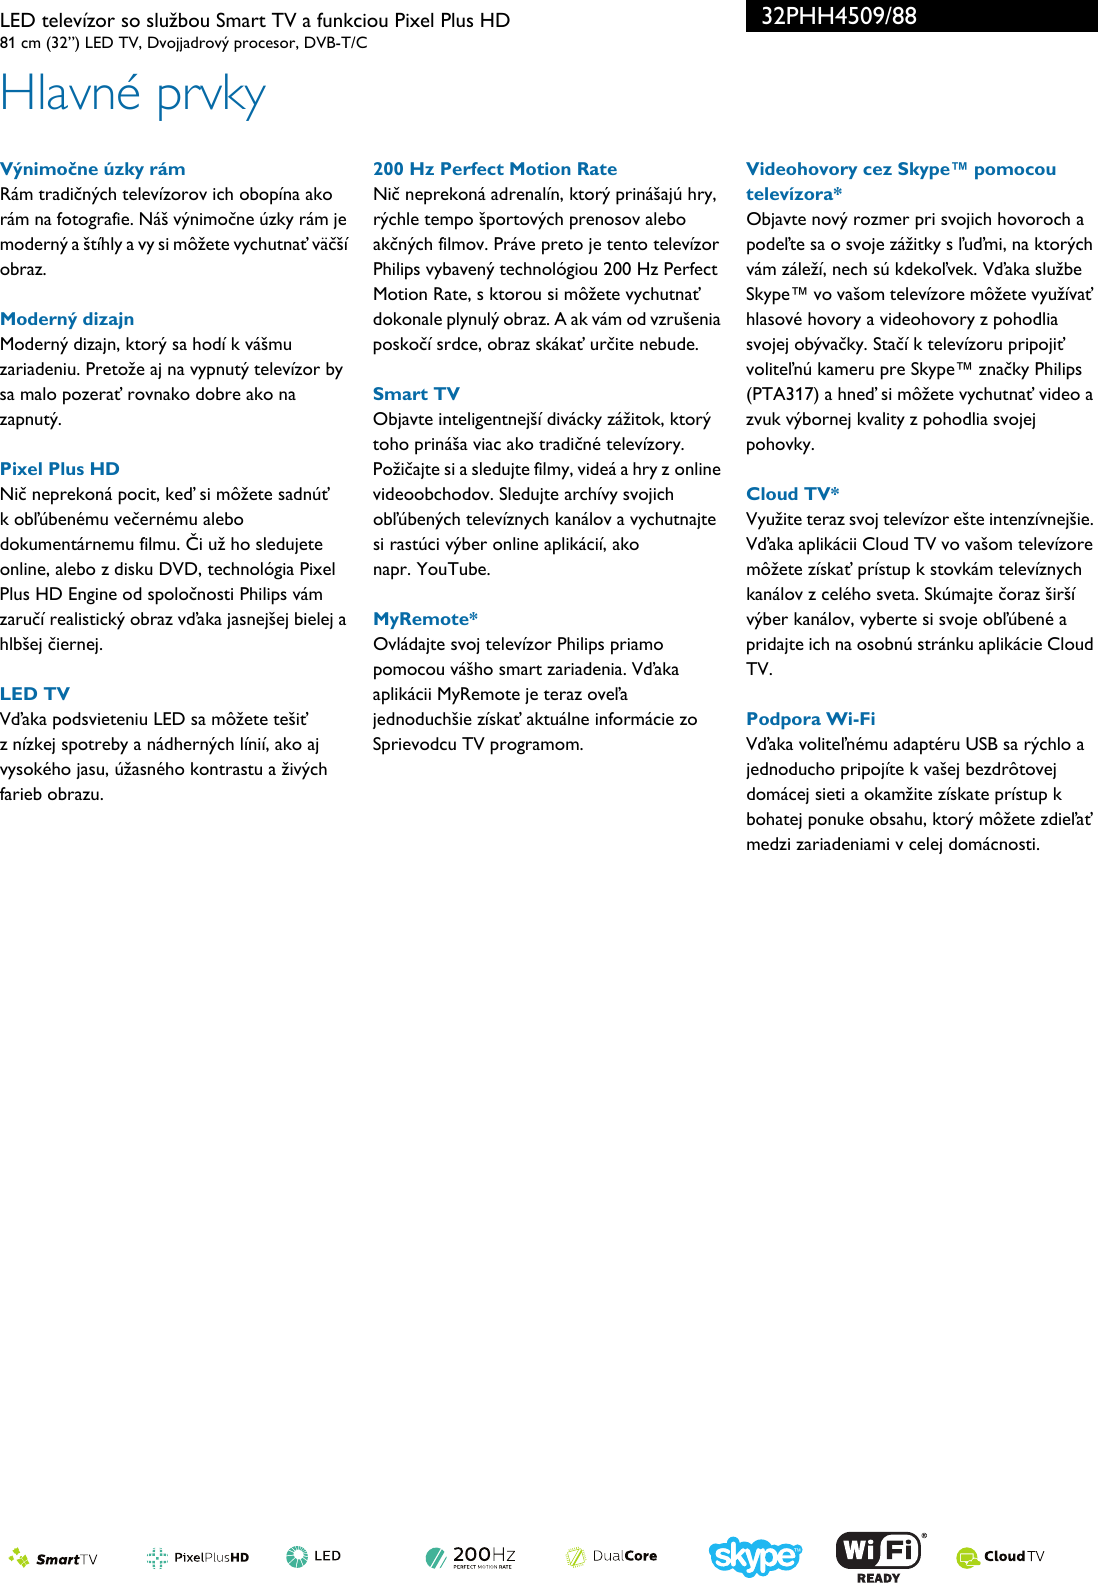 32PHH User Guide Page 2